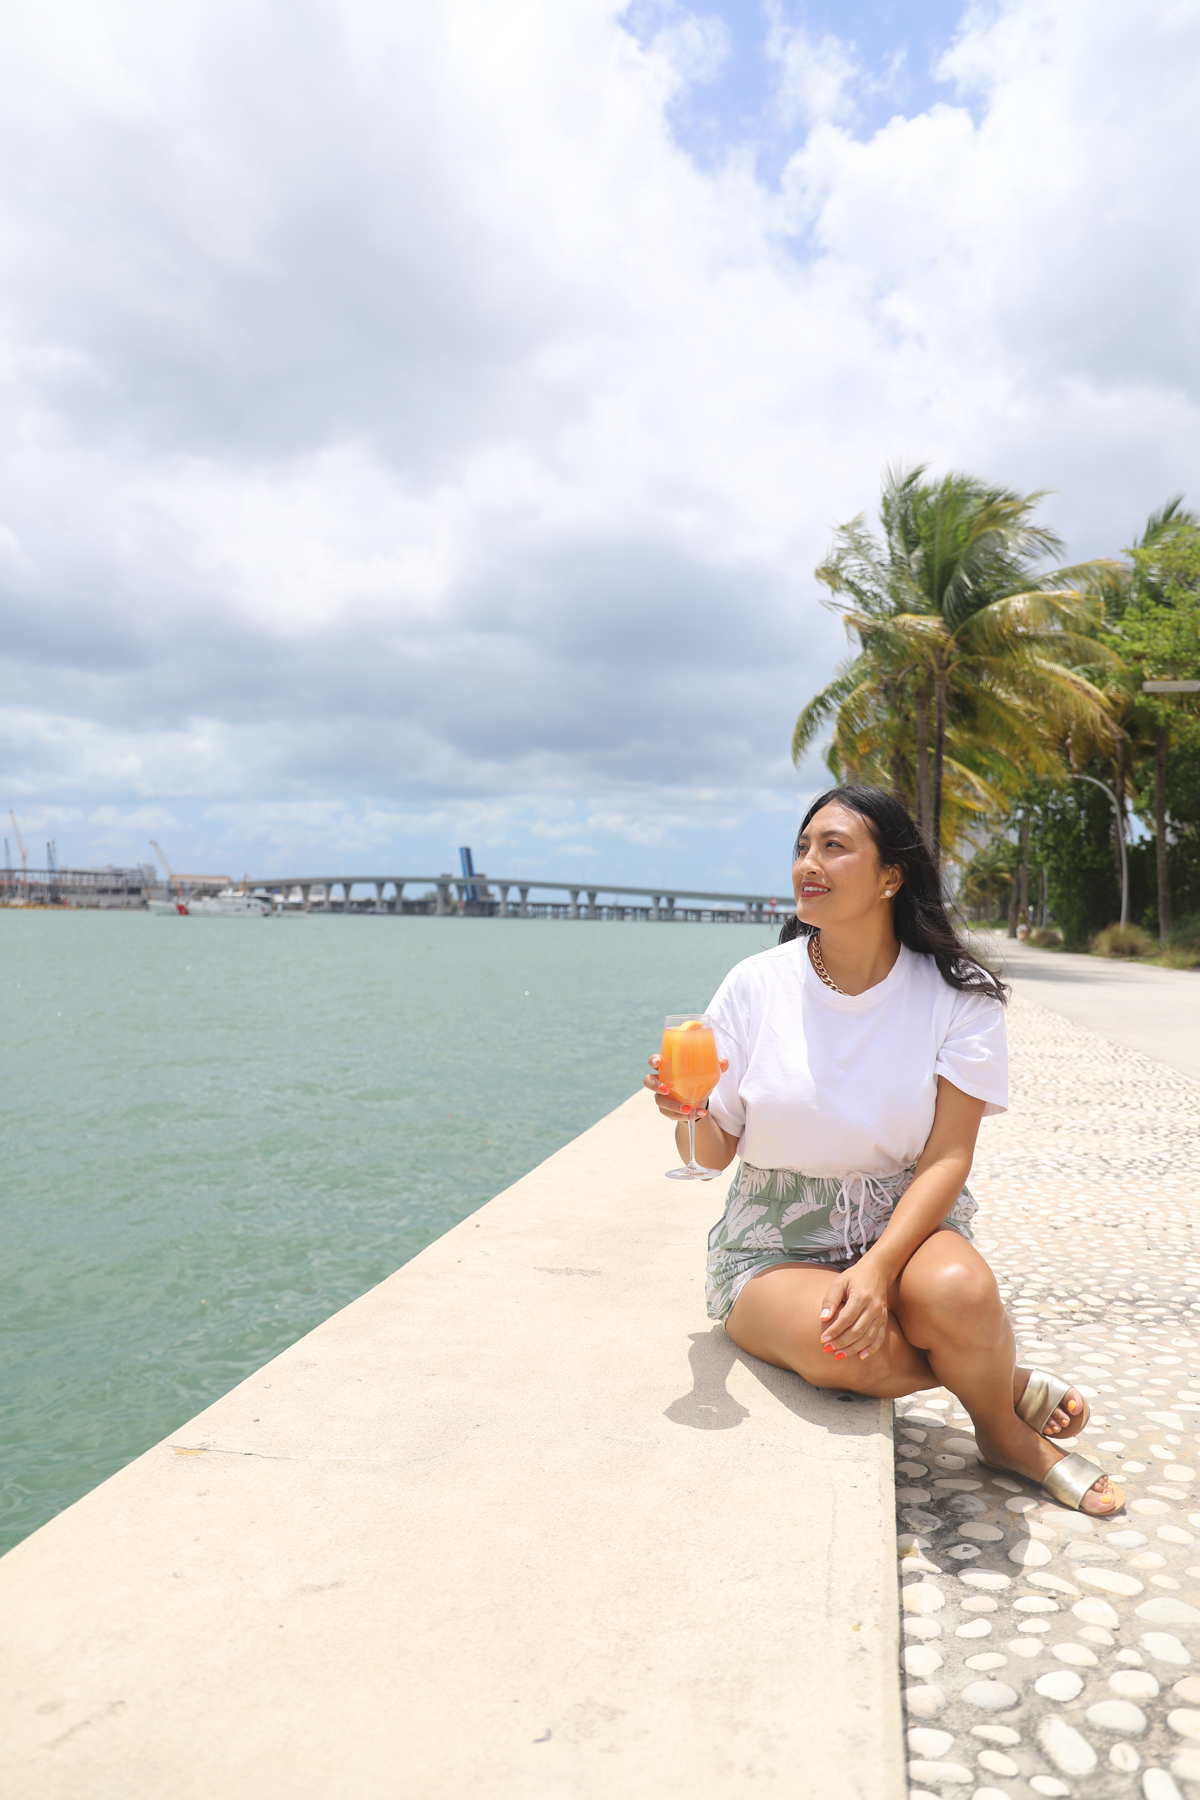 Best Brunch Spot Miami by the water - Verde at PAMM